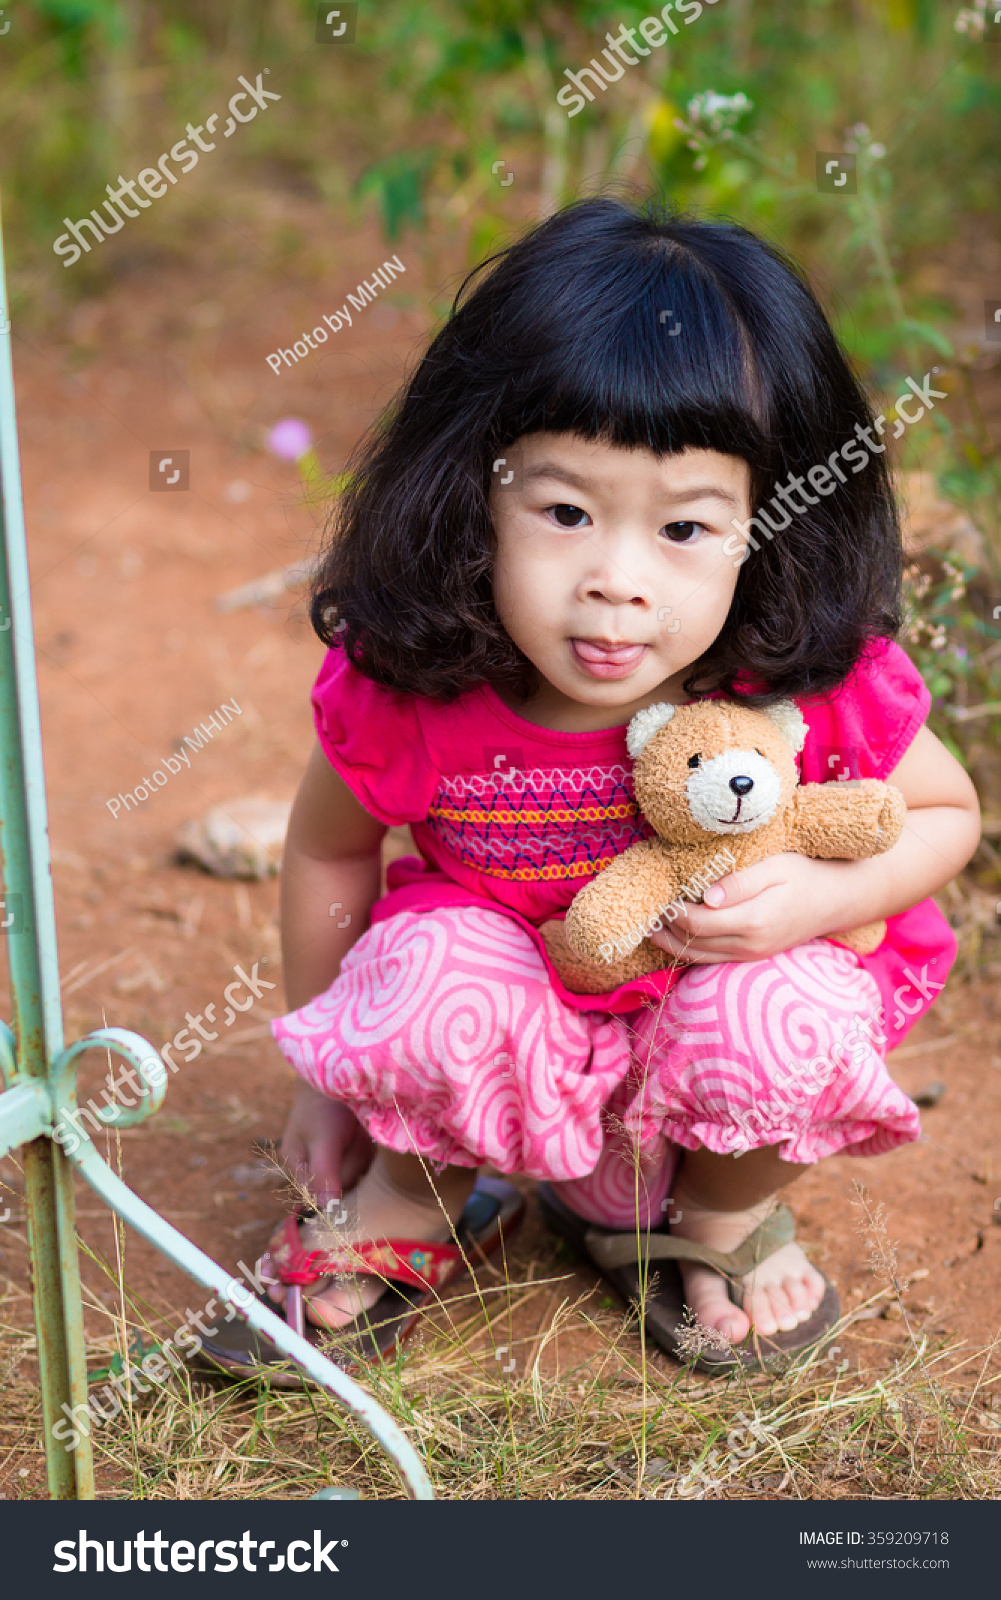 asian baby cute girl curly hair stock photo (download now) 359209718